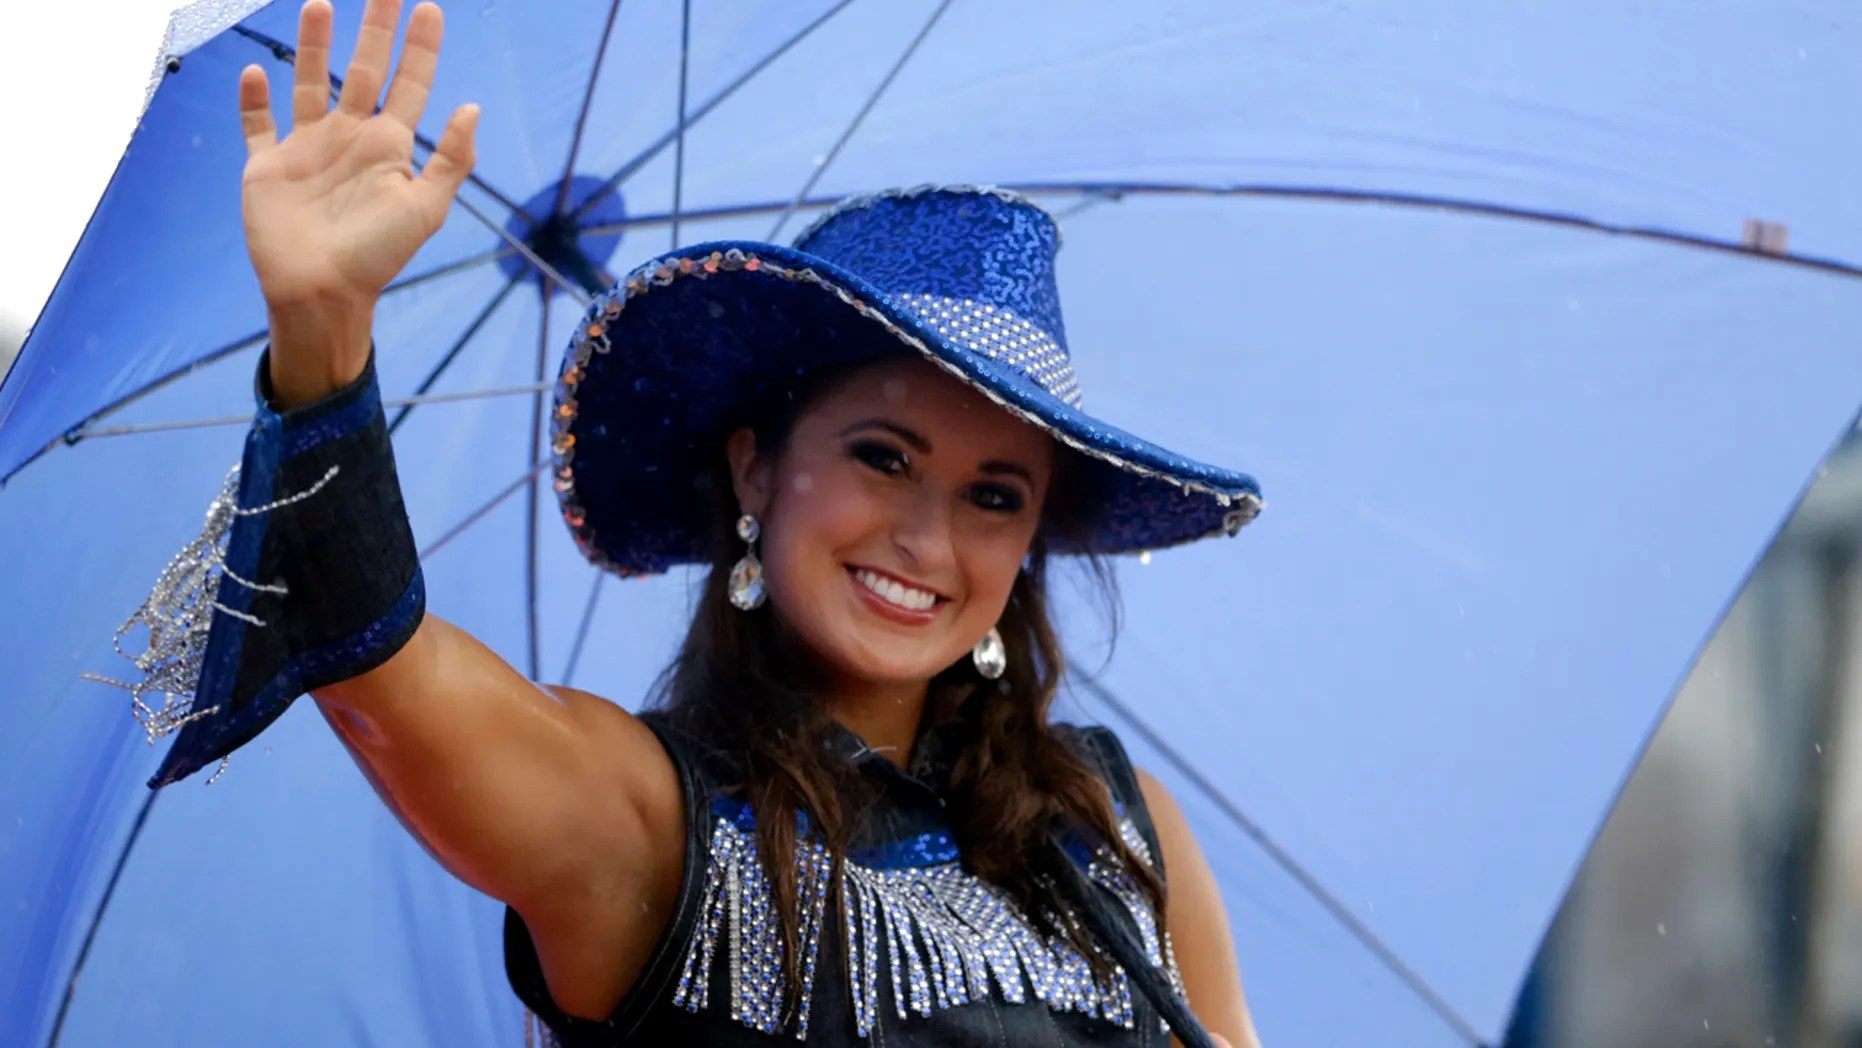 In this Saturday, Sept. 13, 2014 file photo, Miss Kentucky Ramsey Carpenter participates in the Miss America Shoe Parade at the Atlantic City boardwalk in Atlantic City, N.J. (AP Photo/Julio Cortez, File)